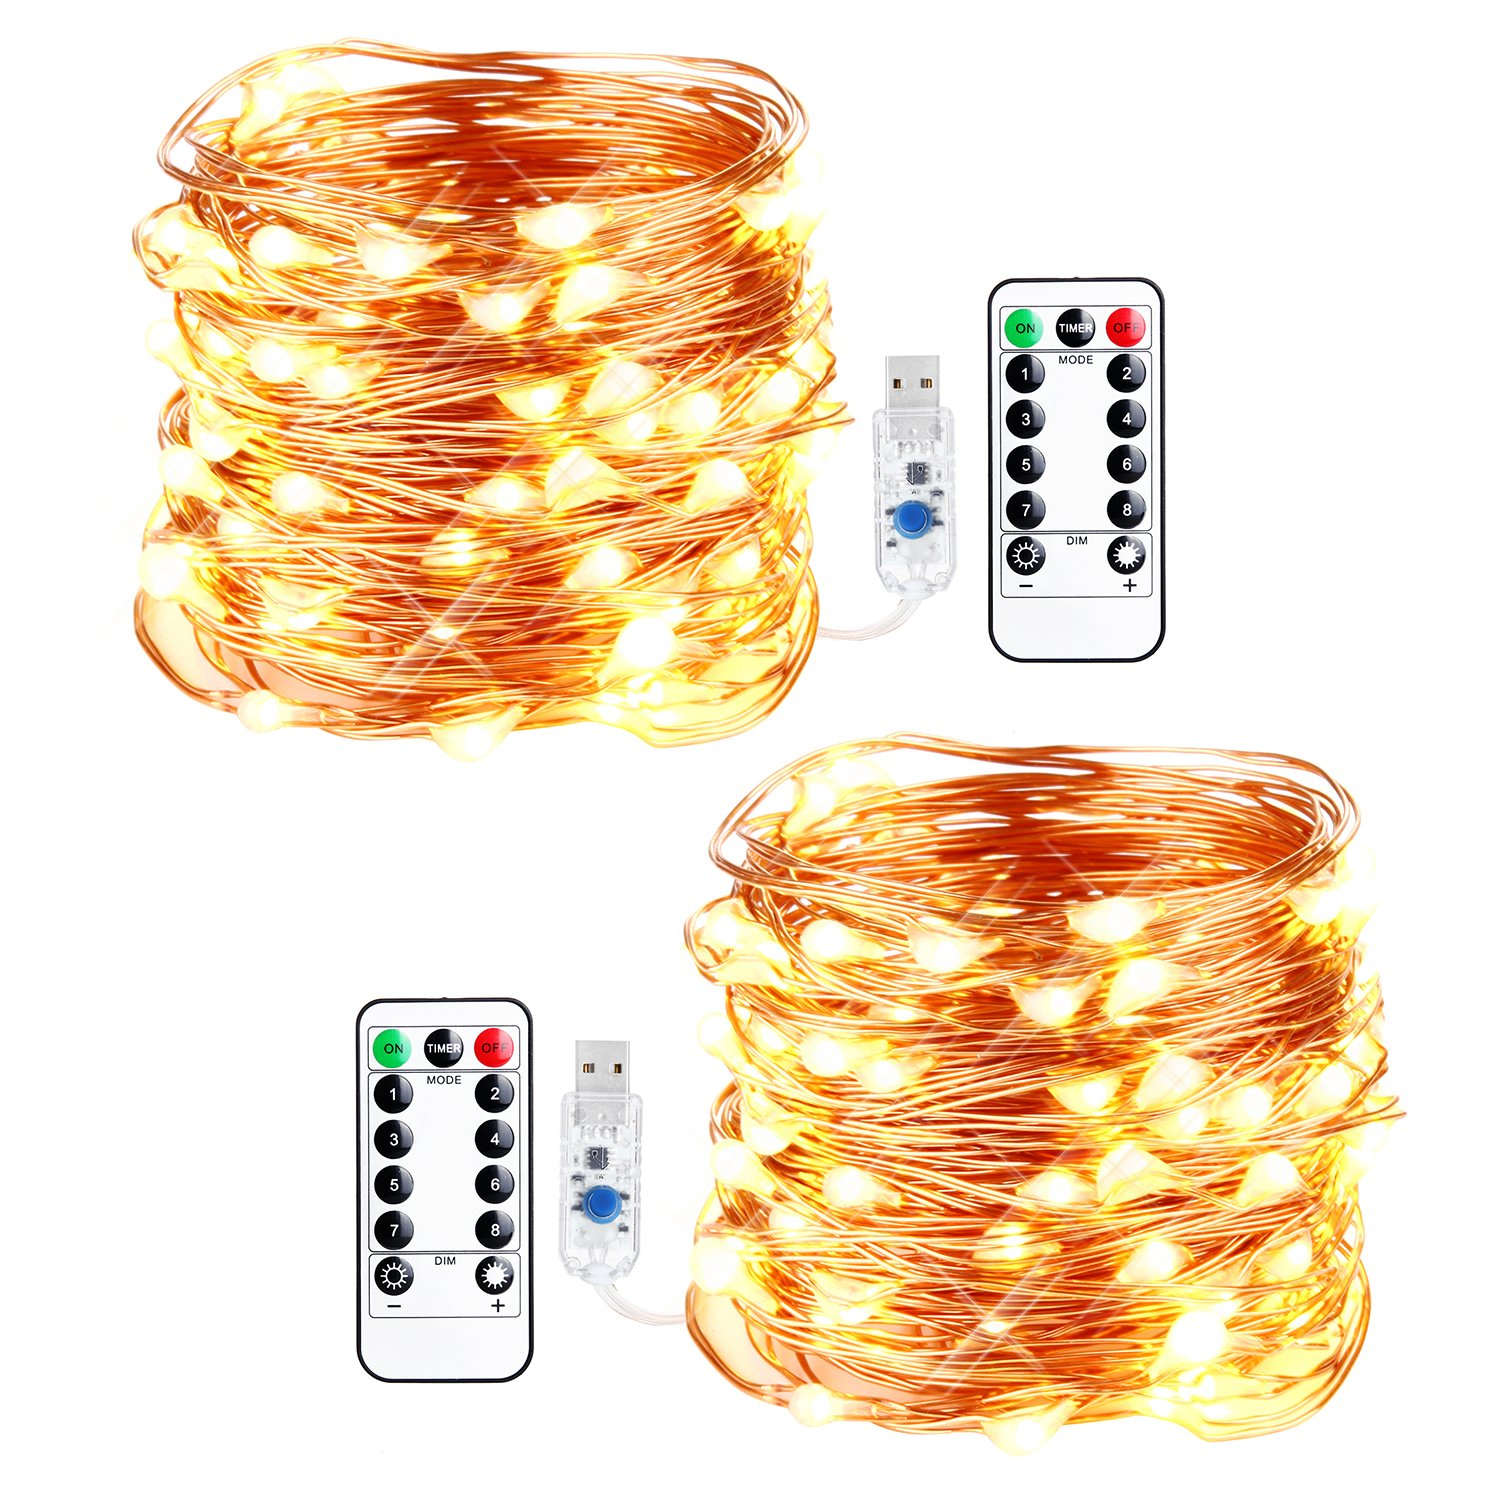 innotree LED String Lights, [2 Pack]100 LED USB Plug in Fairy String Lights, 8 Modes Warm White & Multi-Color Changing Copper Wire Lights with Remote &Timer, Twinkle Lights for Bedroom, Patio, Party